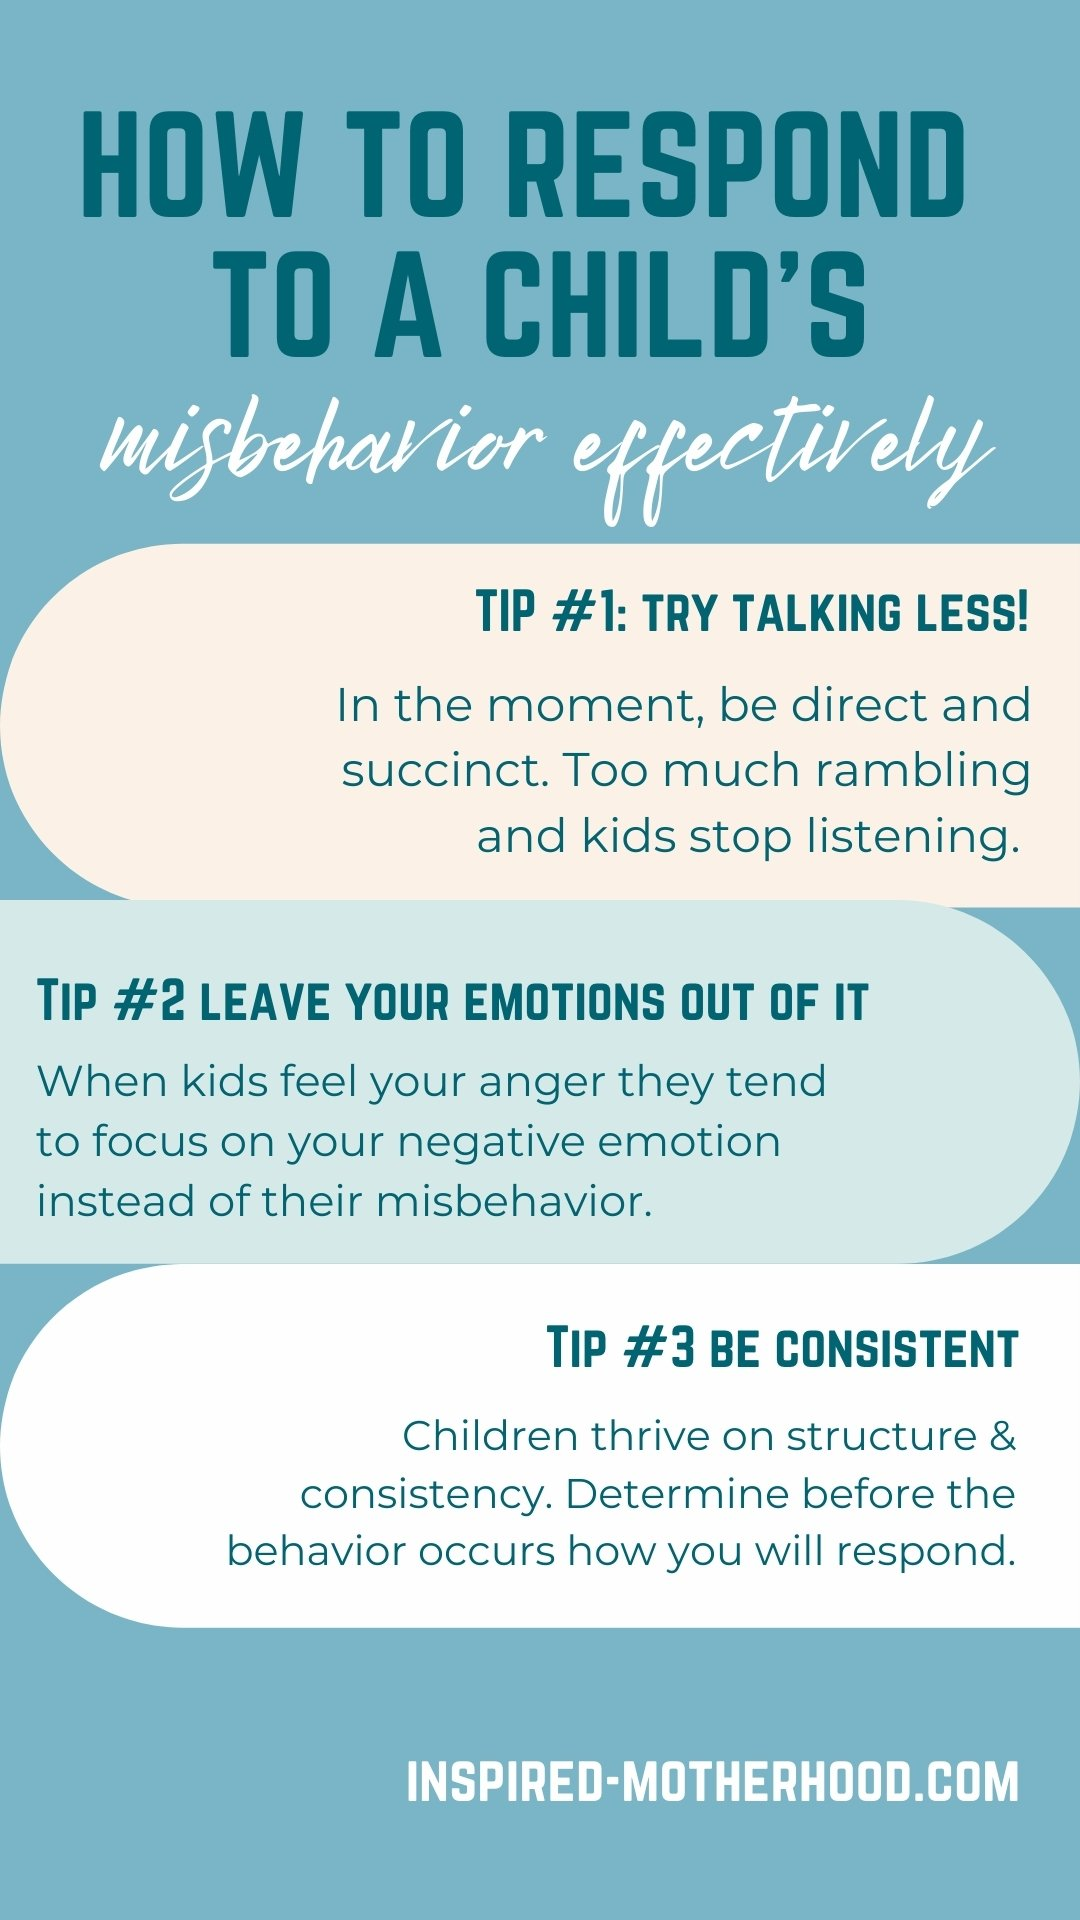 Looking for a more effective way to discipline? Try correcting misbehavior by using less words and counting to 3! Trust us, it works. Leave your emotions out of your parenting.